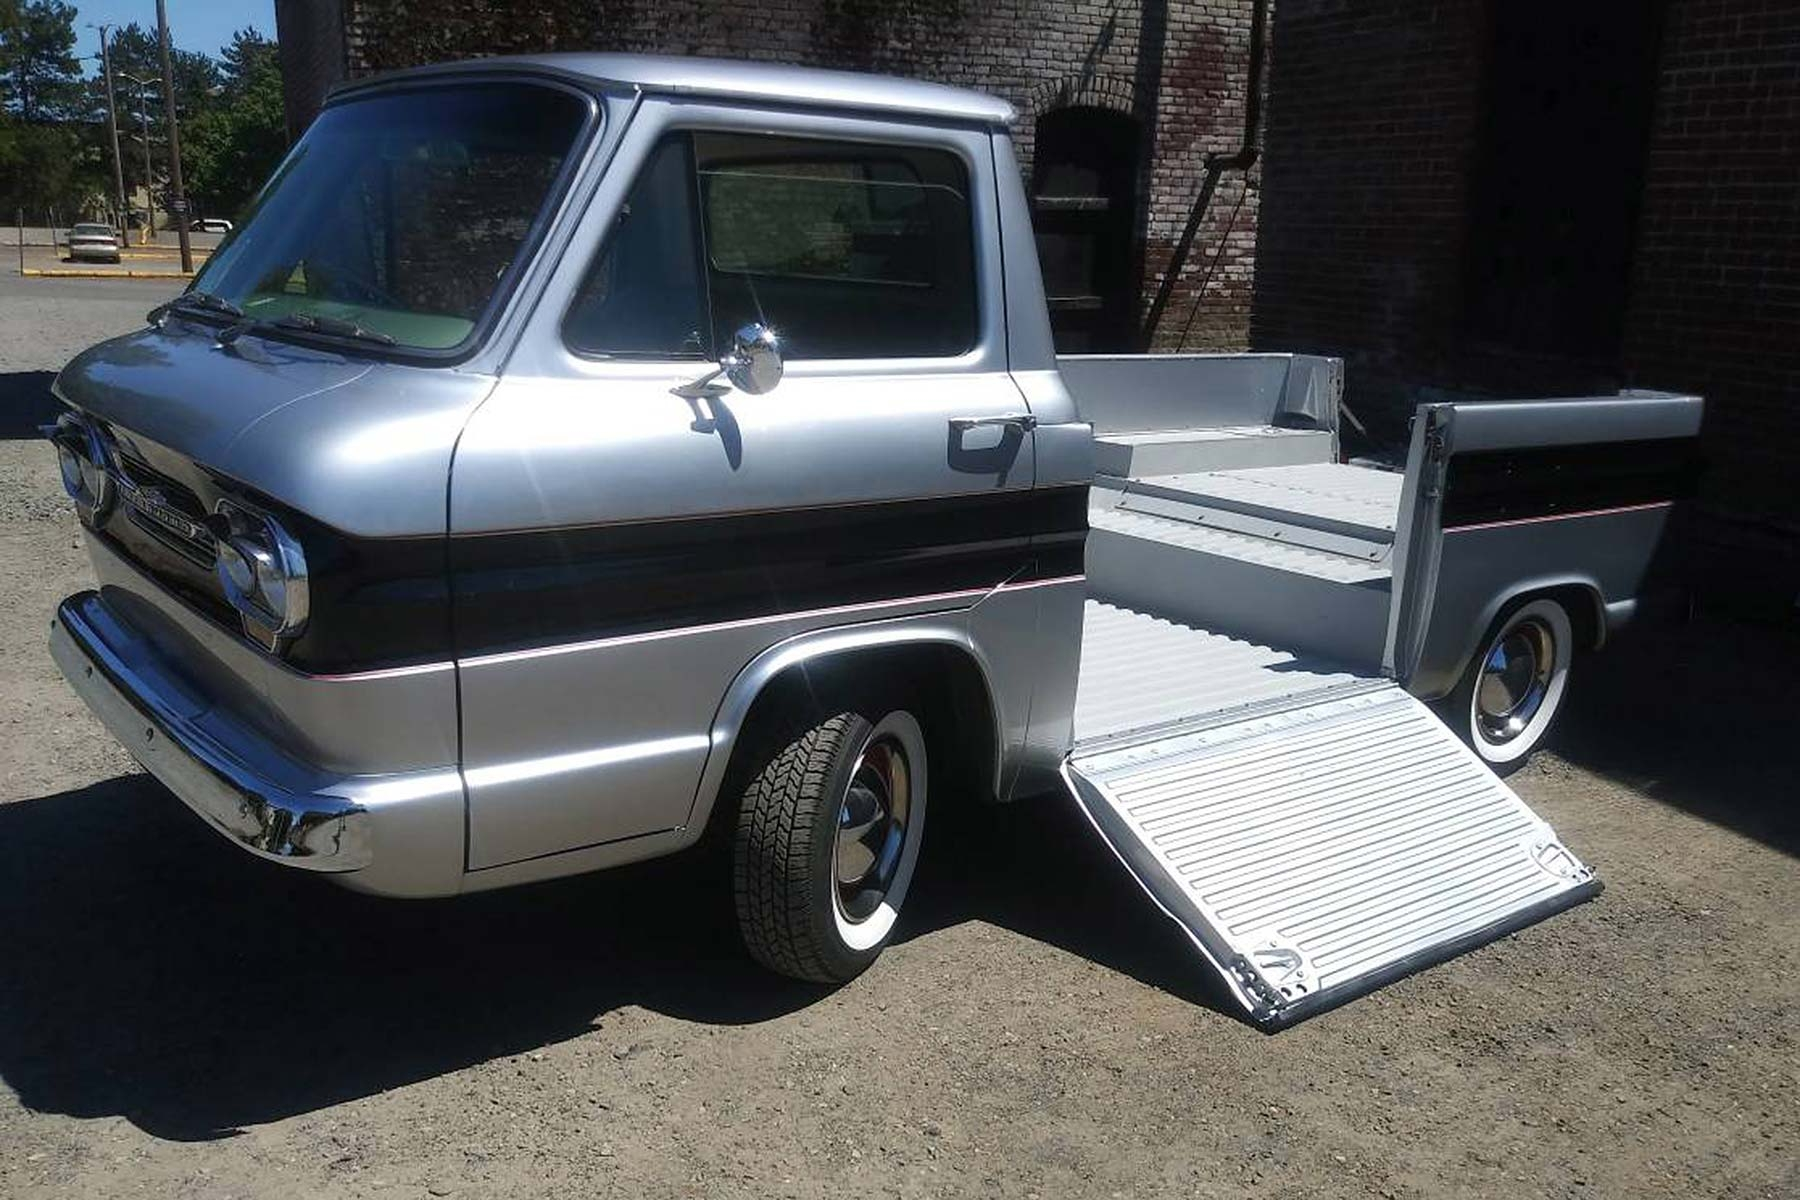 Enthusiasts: Would you buy this Chevrolet Corvair Rampside? We would